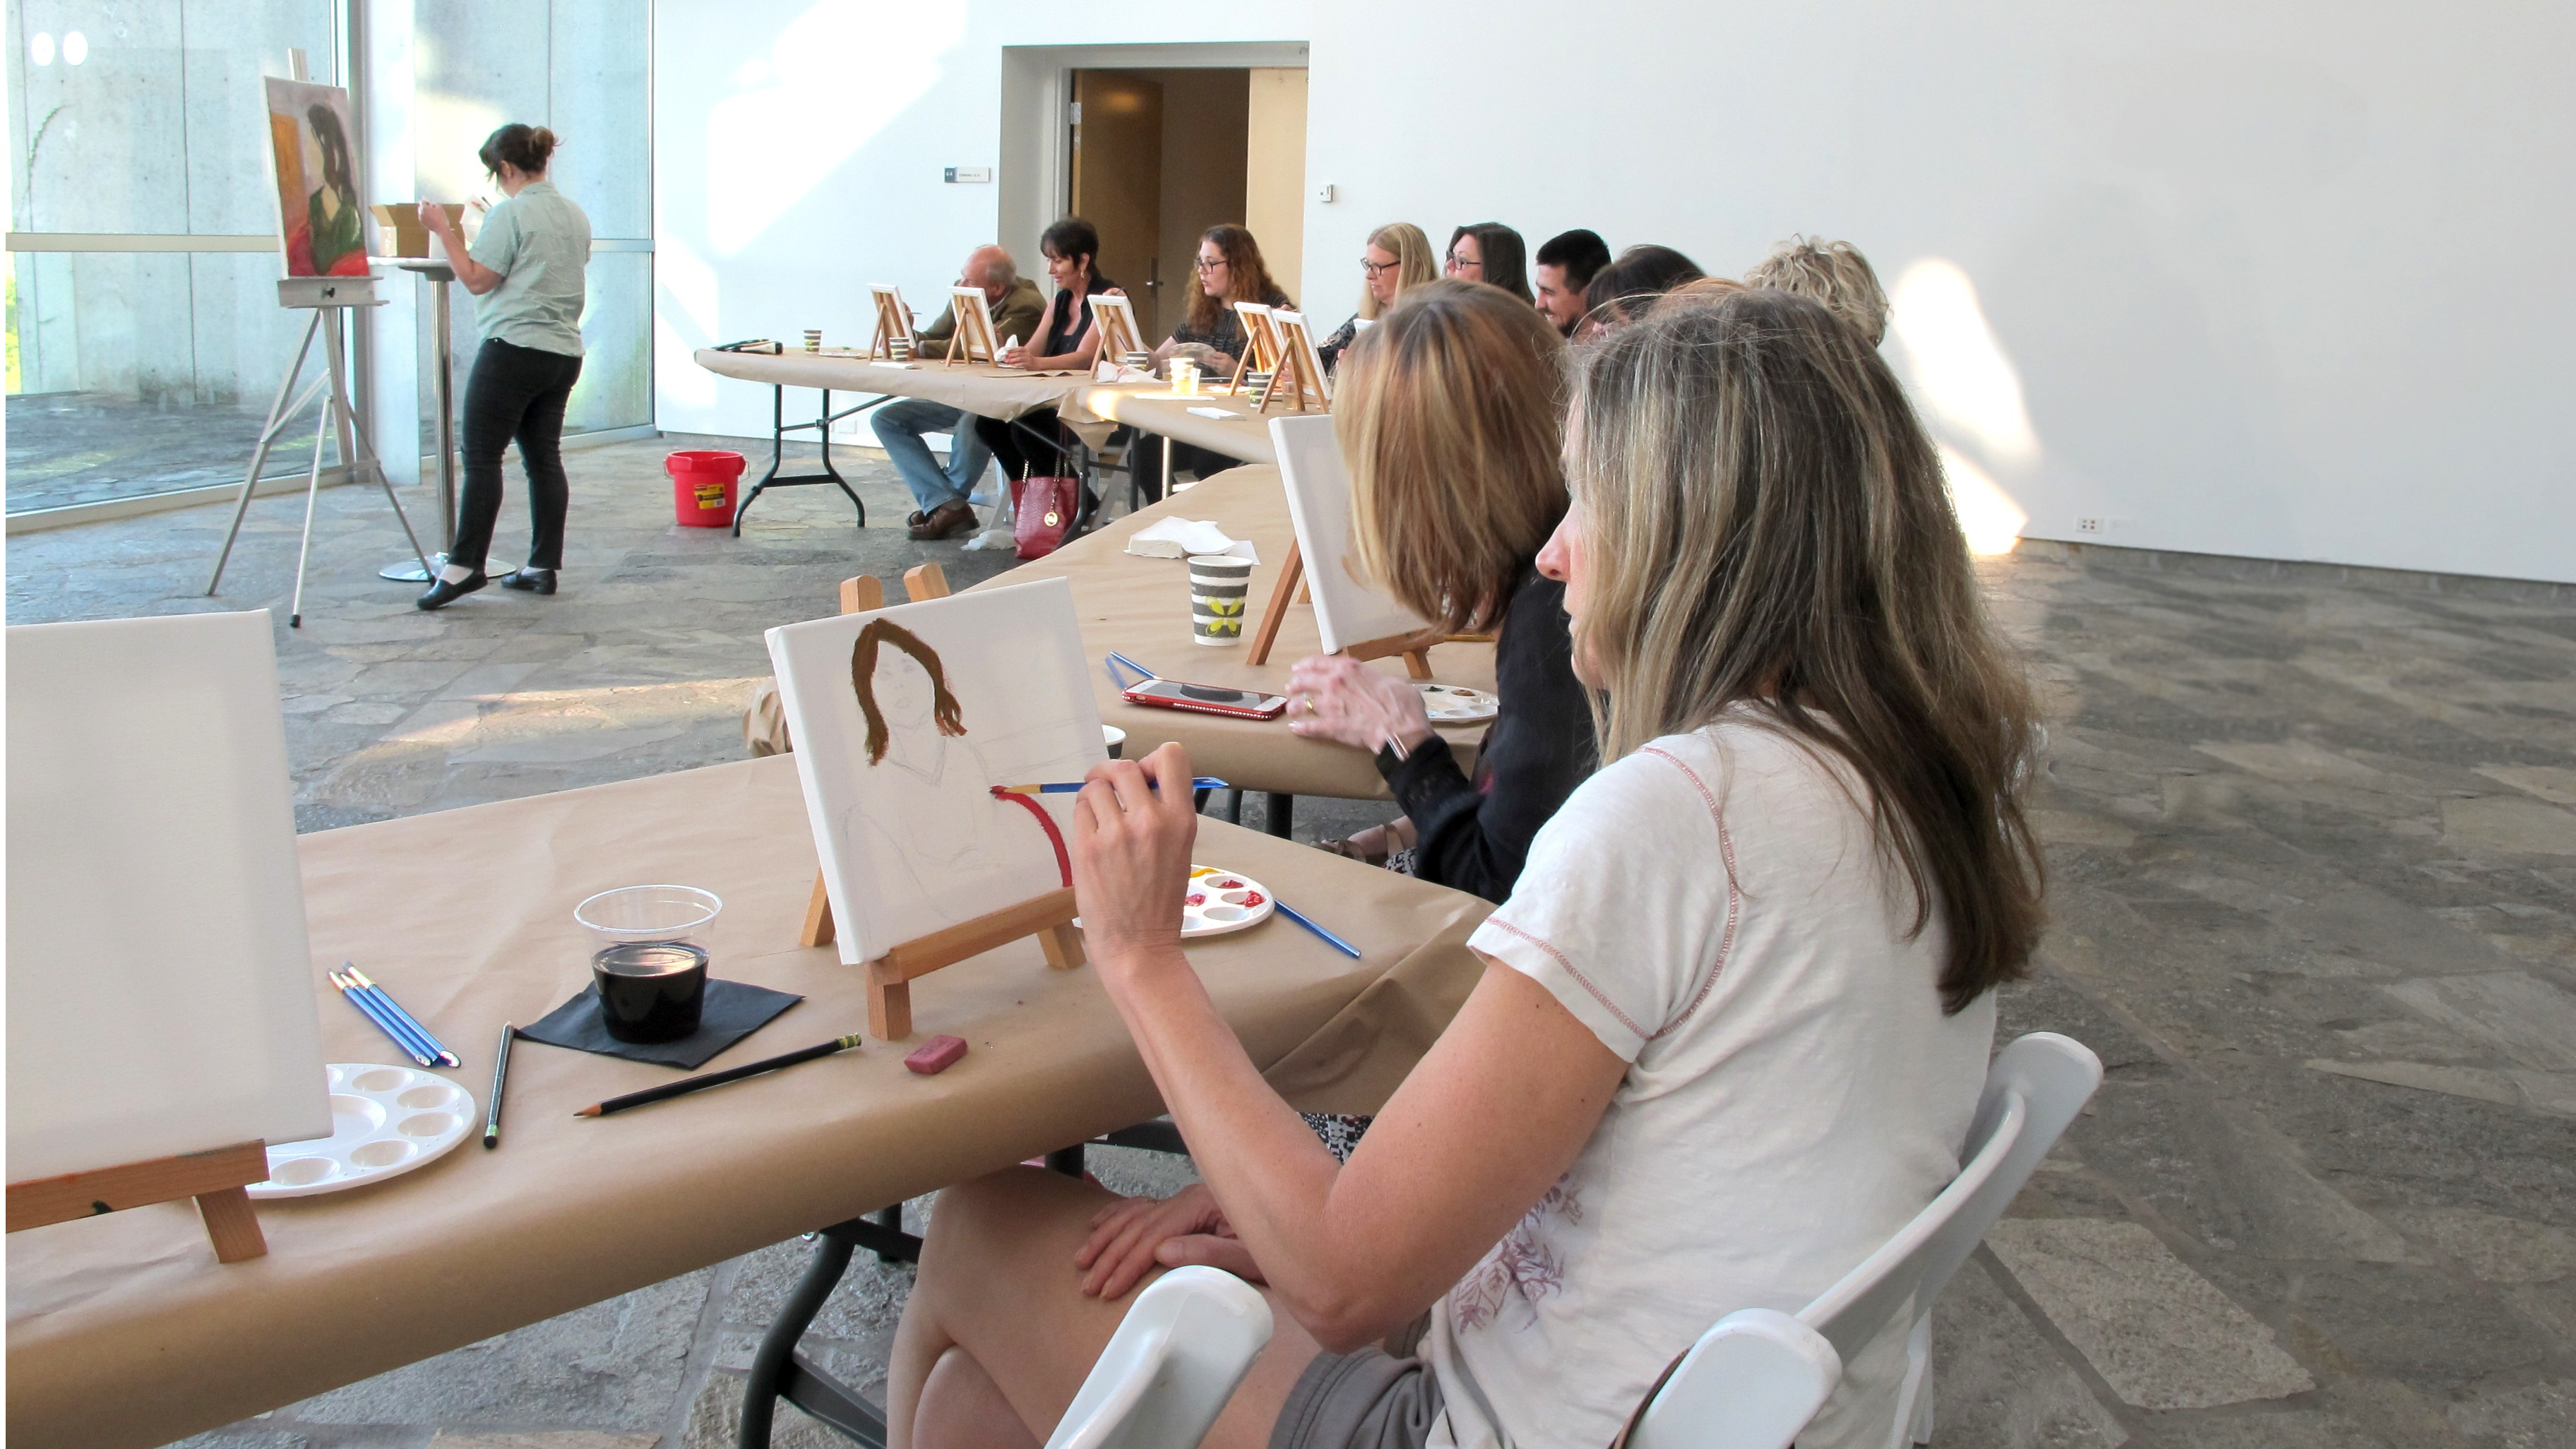 Woman sits at a long table and paints on a small canvas. Other painters sit at tables behind her.